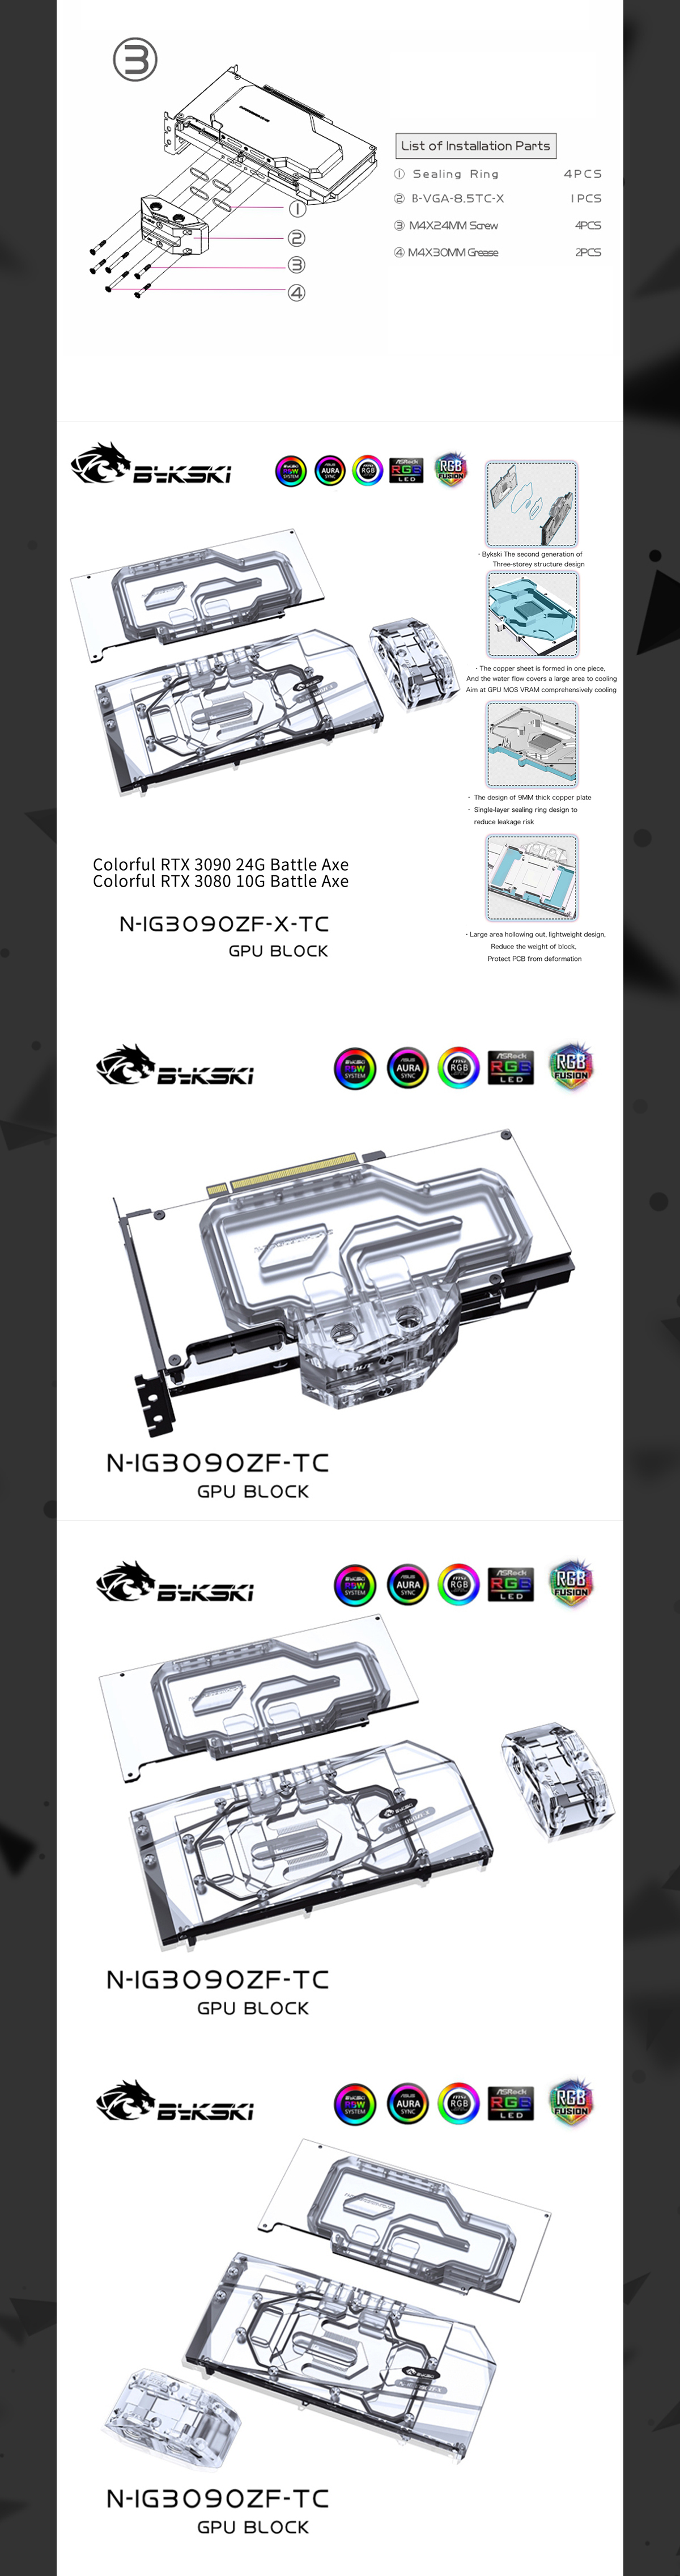 Bykski GPU Block With Active Waterway Backplane Cooler For Colorful Battle Axe RTX 3090 3080Ti 3080 N-IG3090ZF-TC